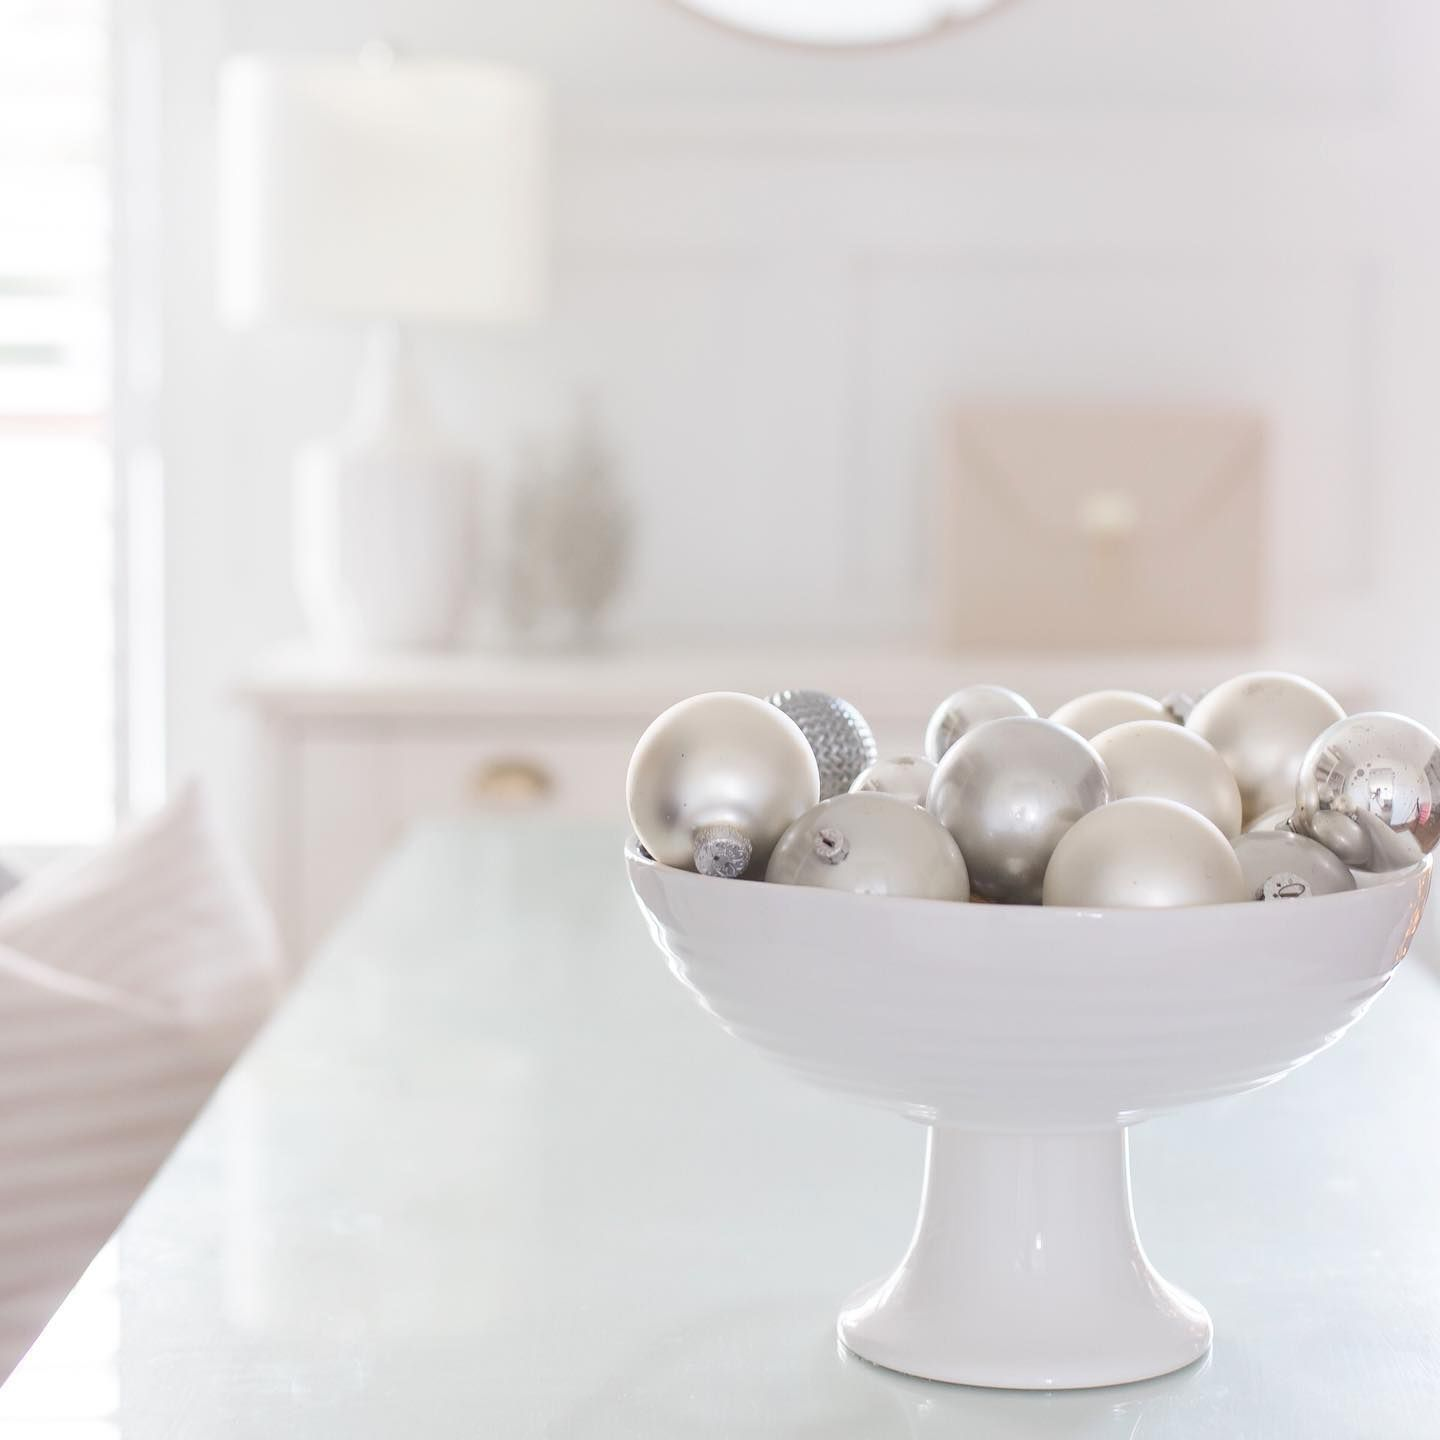 Glass And Silver Orniment Featured In 2020 White House Christmas This year I couldn't use any of my glass ornaments on the tree. I